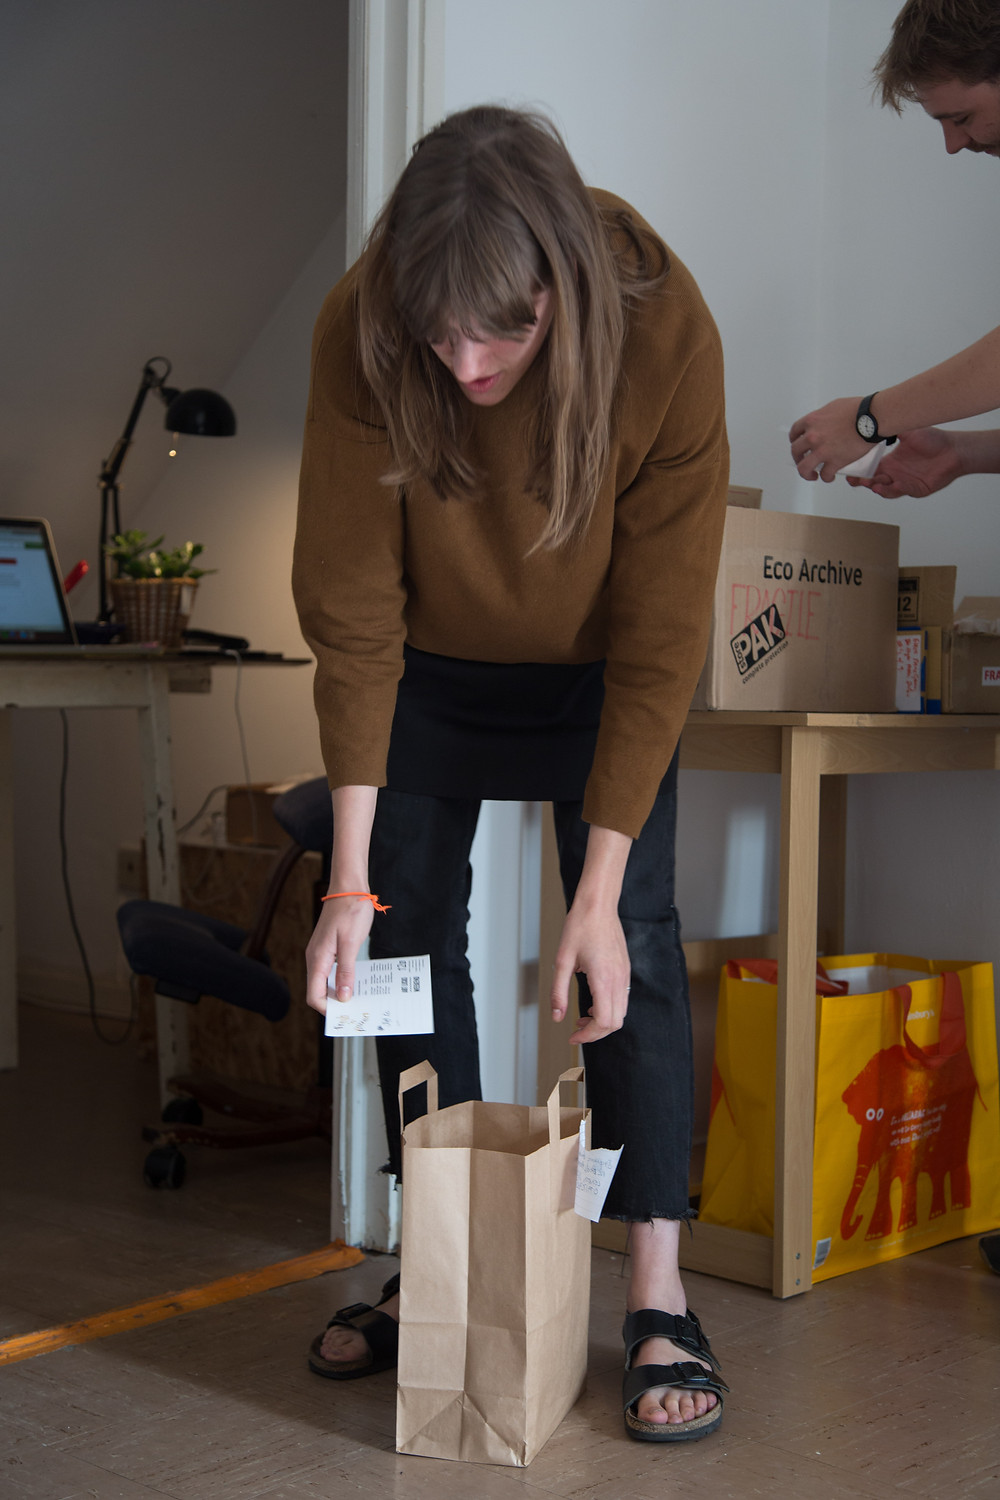 someone with long brown hair and fringe wearing a brown jumper and sandals is crouching down to brown paper bag, behnad them is a desk with a laptop and a lamp and a person checking a piece of paper in a cardboard box